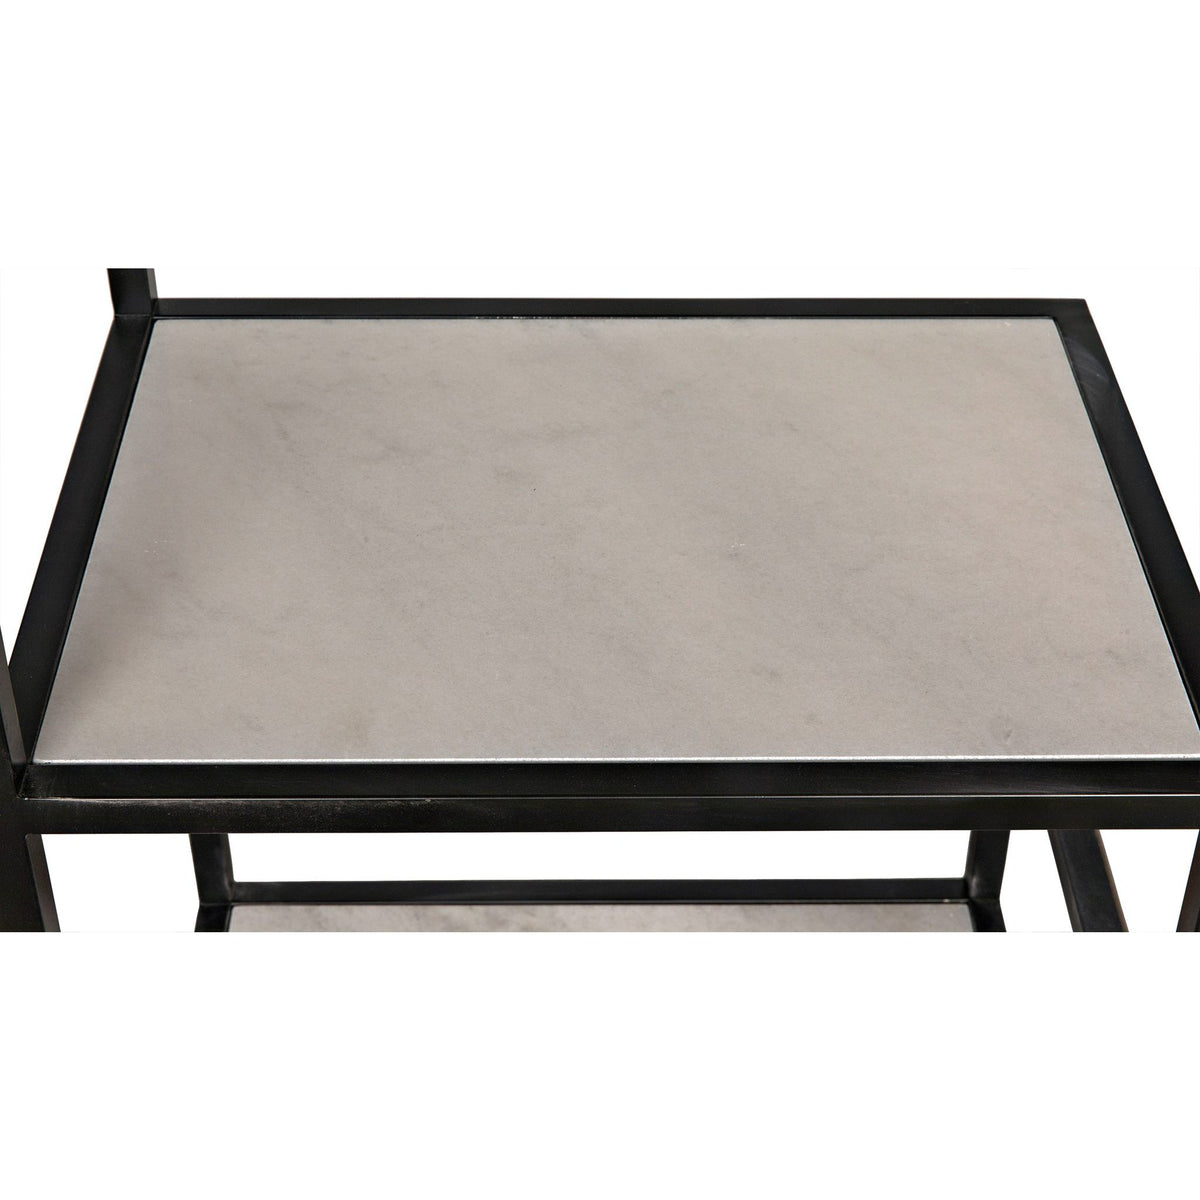 Haru Bookcase Large - Black Metal with White Stone